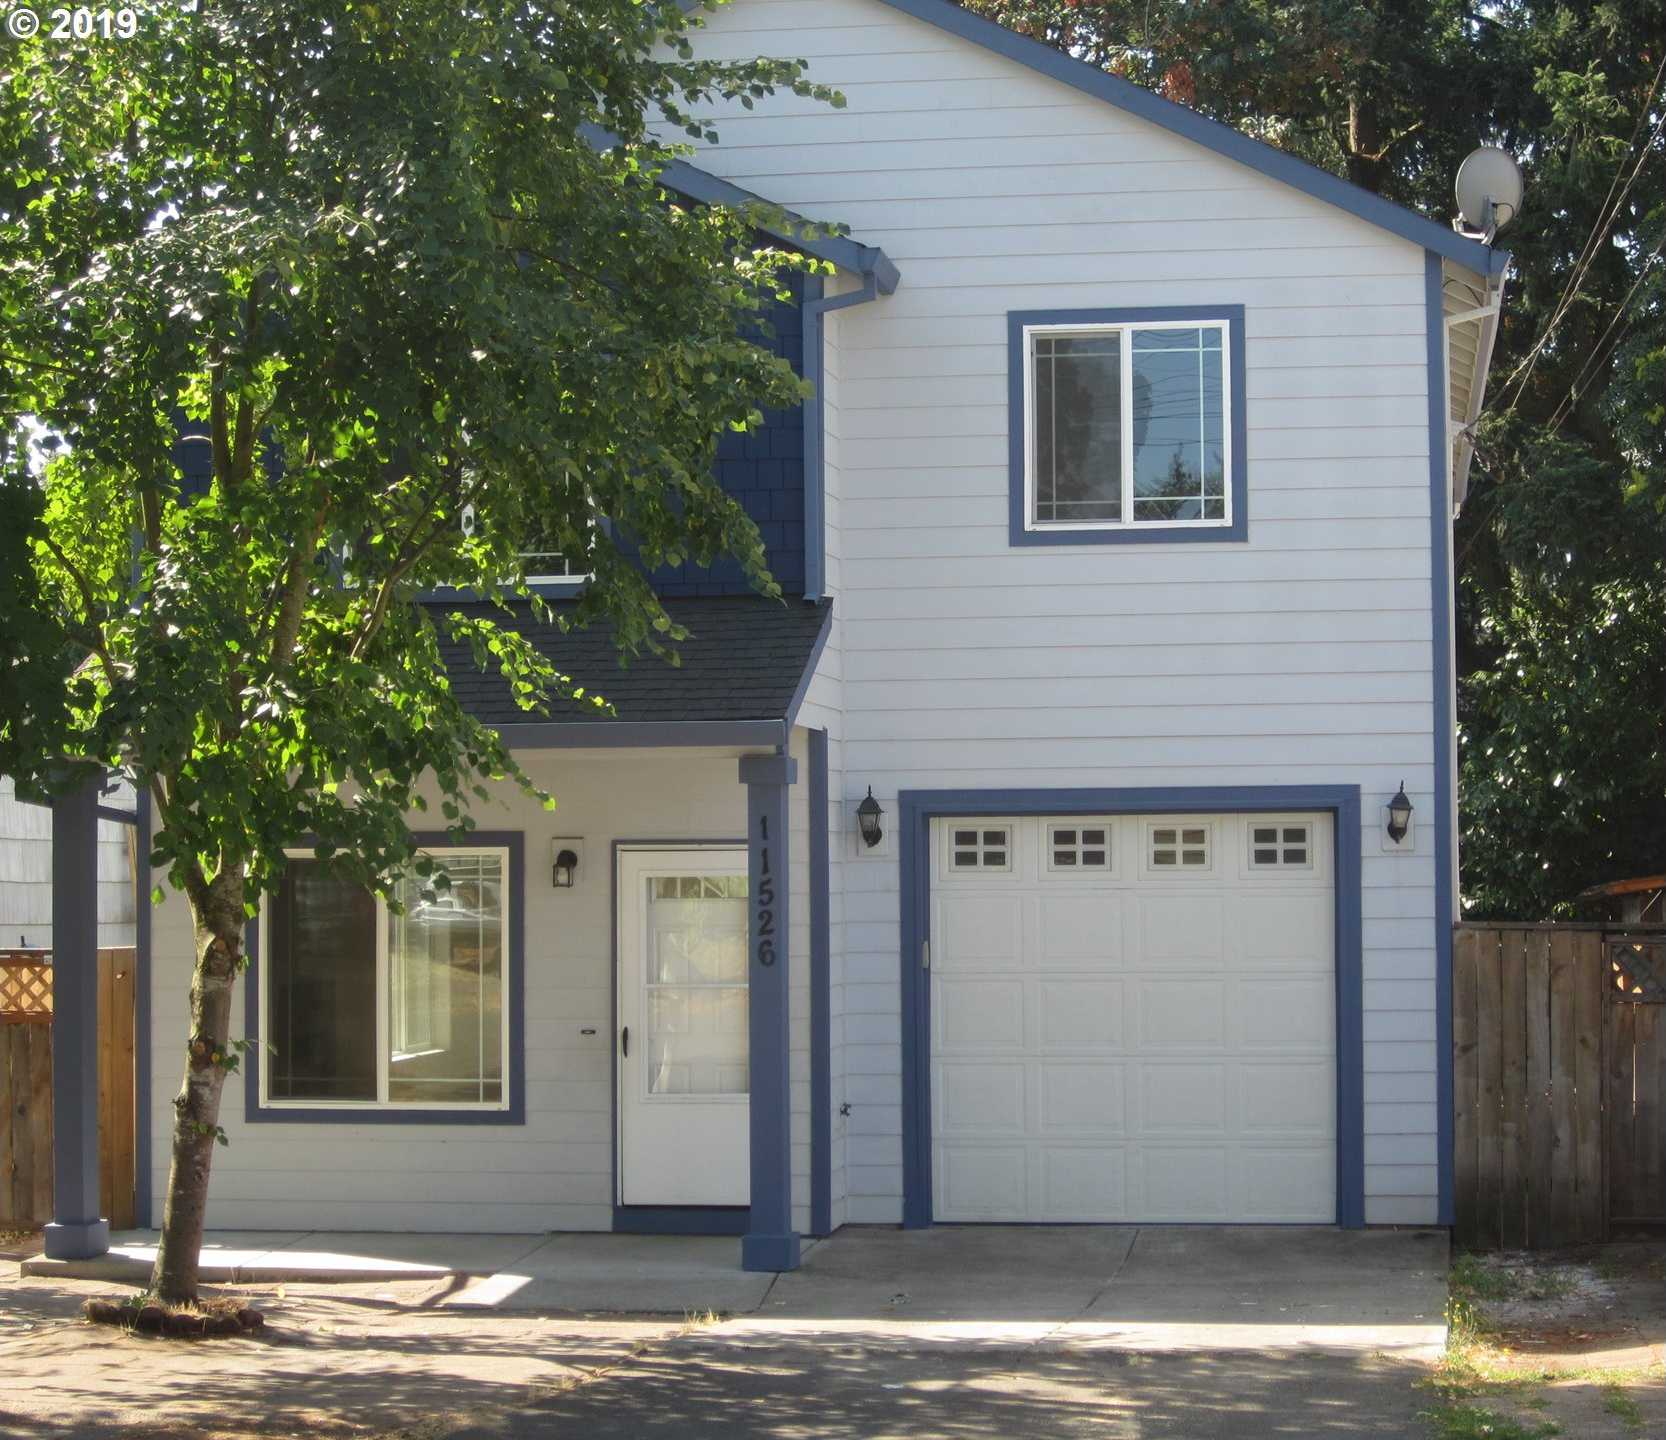 $405,000 - 4Br/3Ba -  for Sale in Ventura Park, Portland